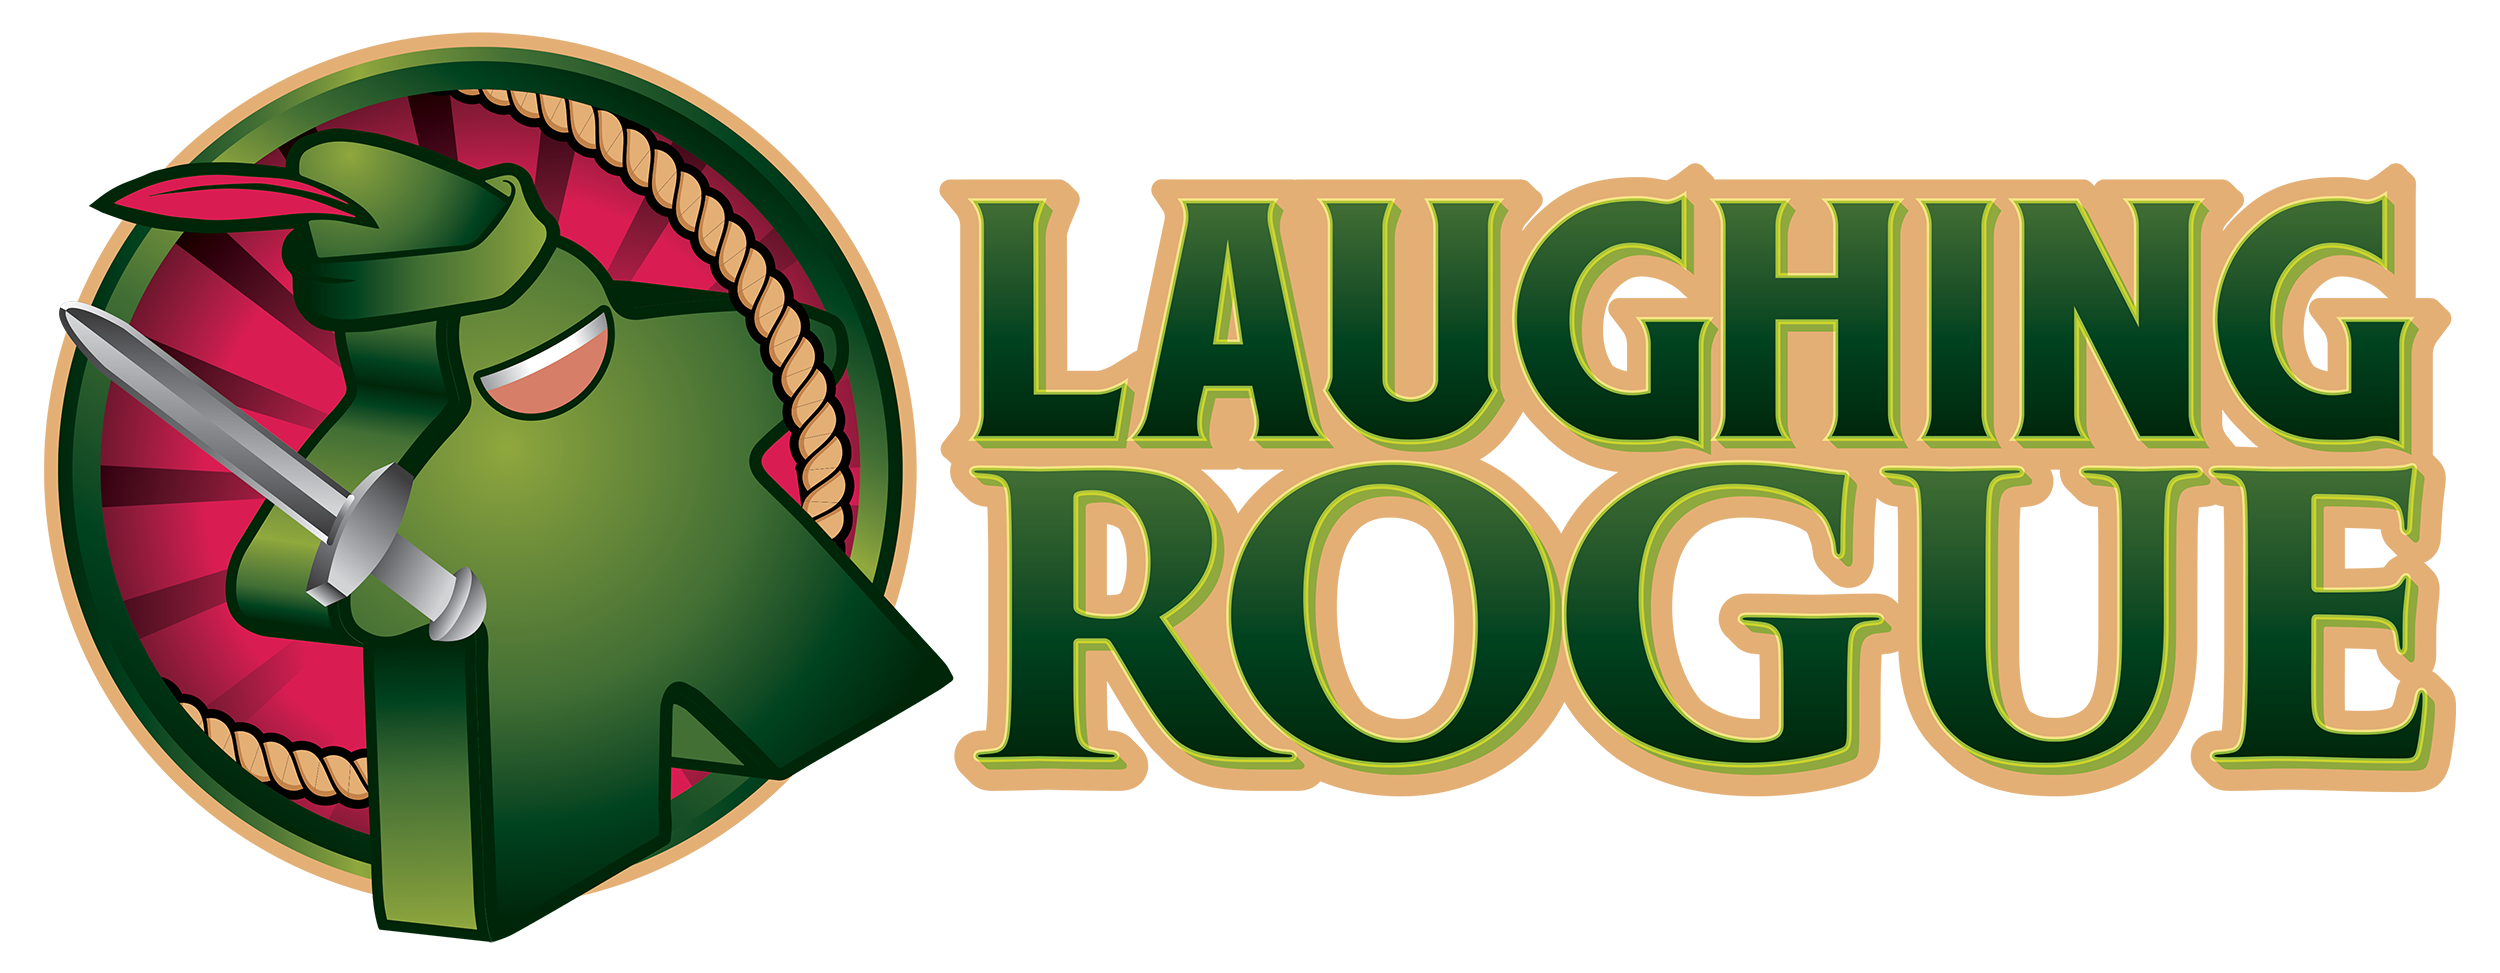 Laughing Rogue